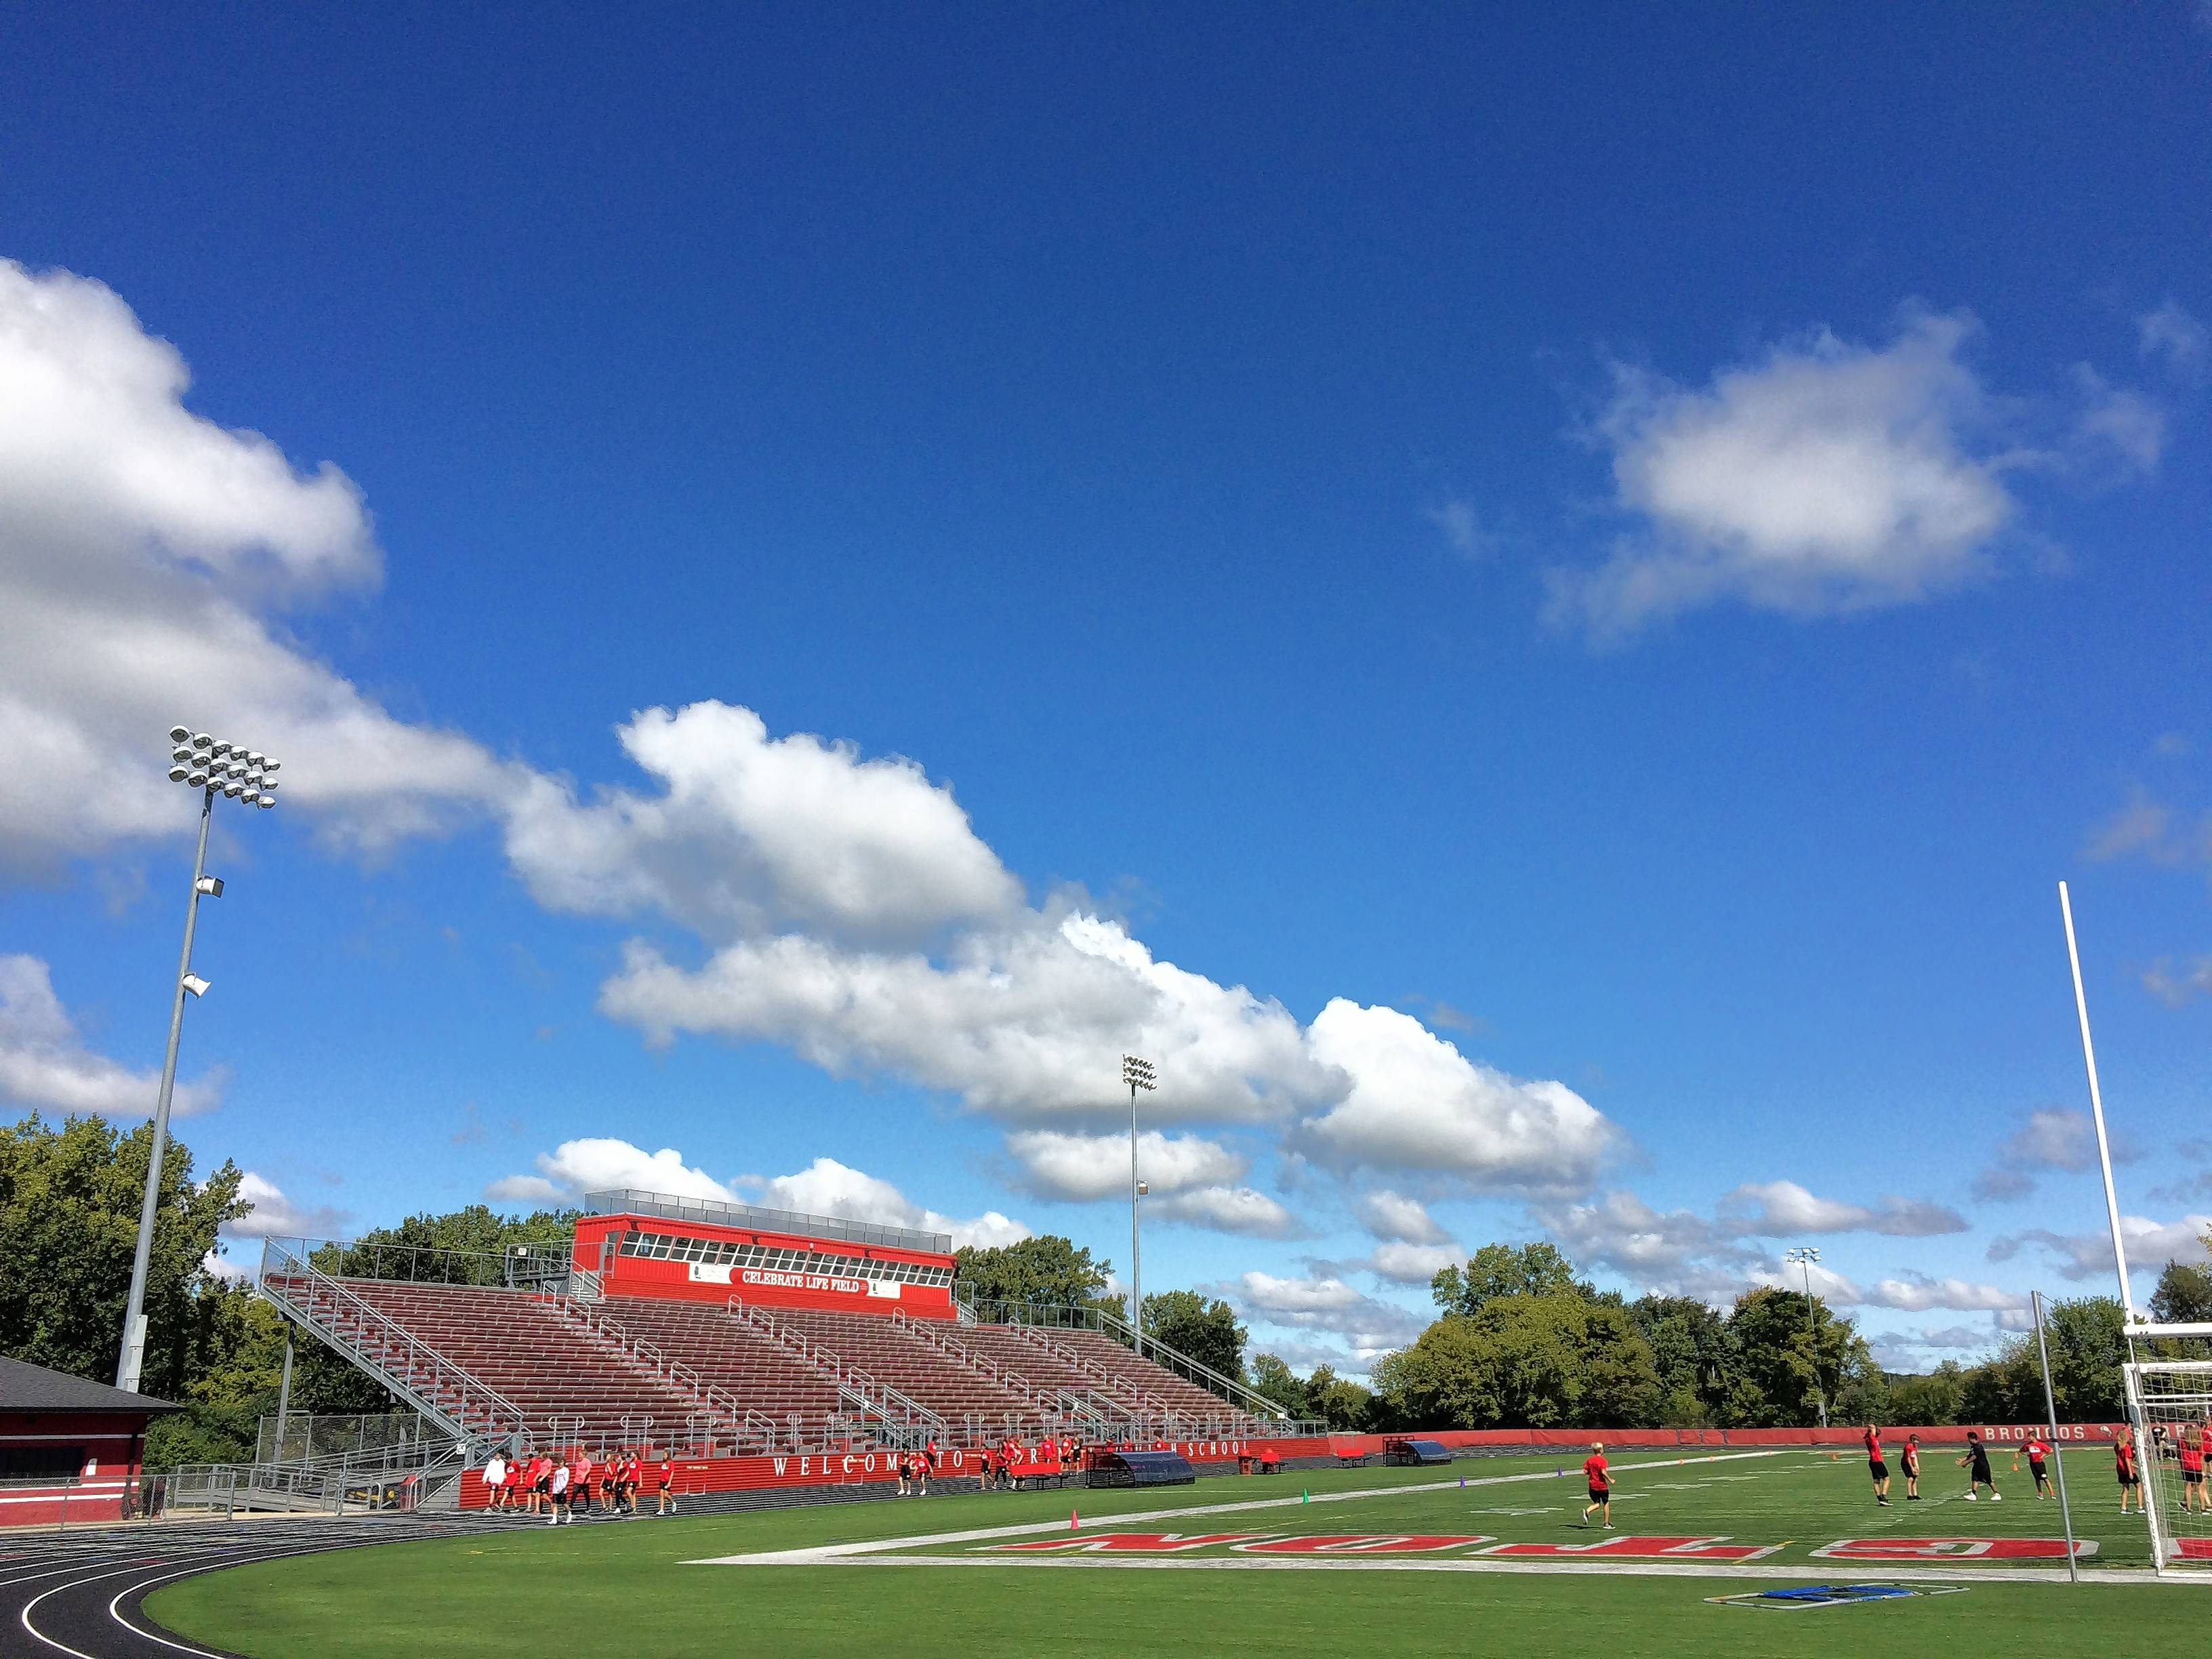 An estimated $920,000 in potential scoreboard and field renovation costs for Barrington High School's outdoor stadium could be defrayed by another round of private contributions, including advertising and naming-rights deals, officials said.